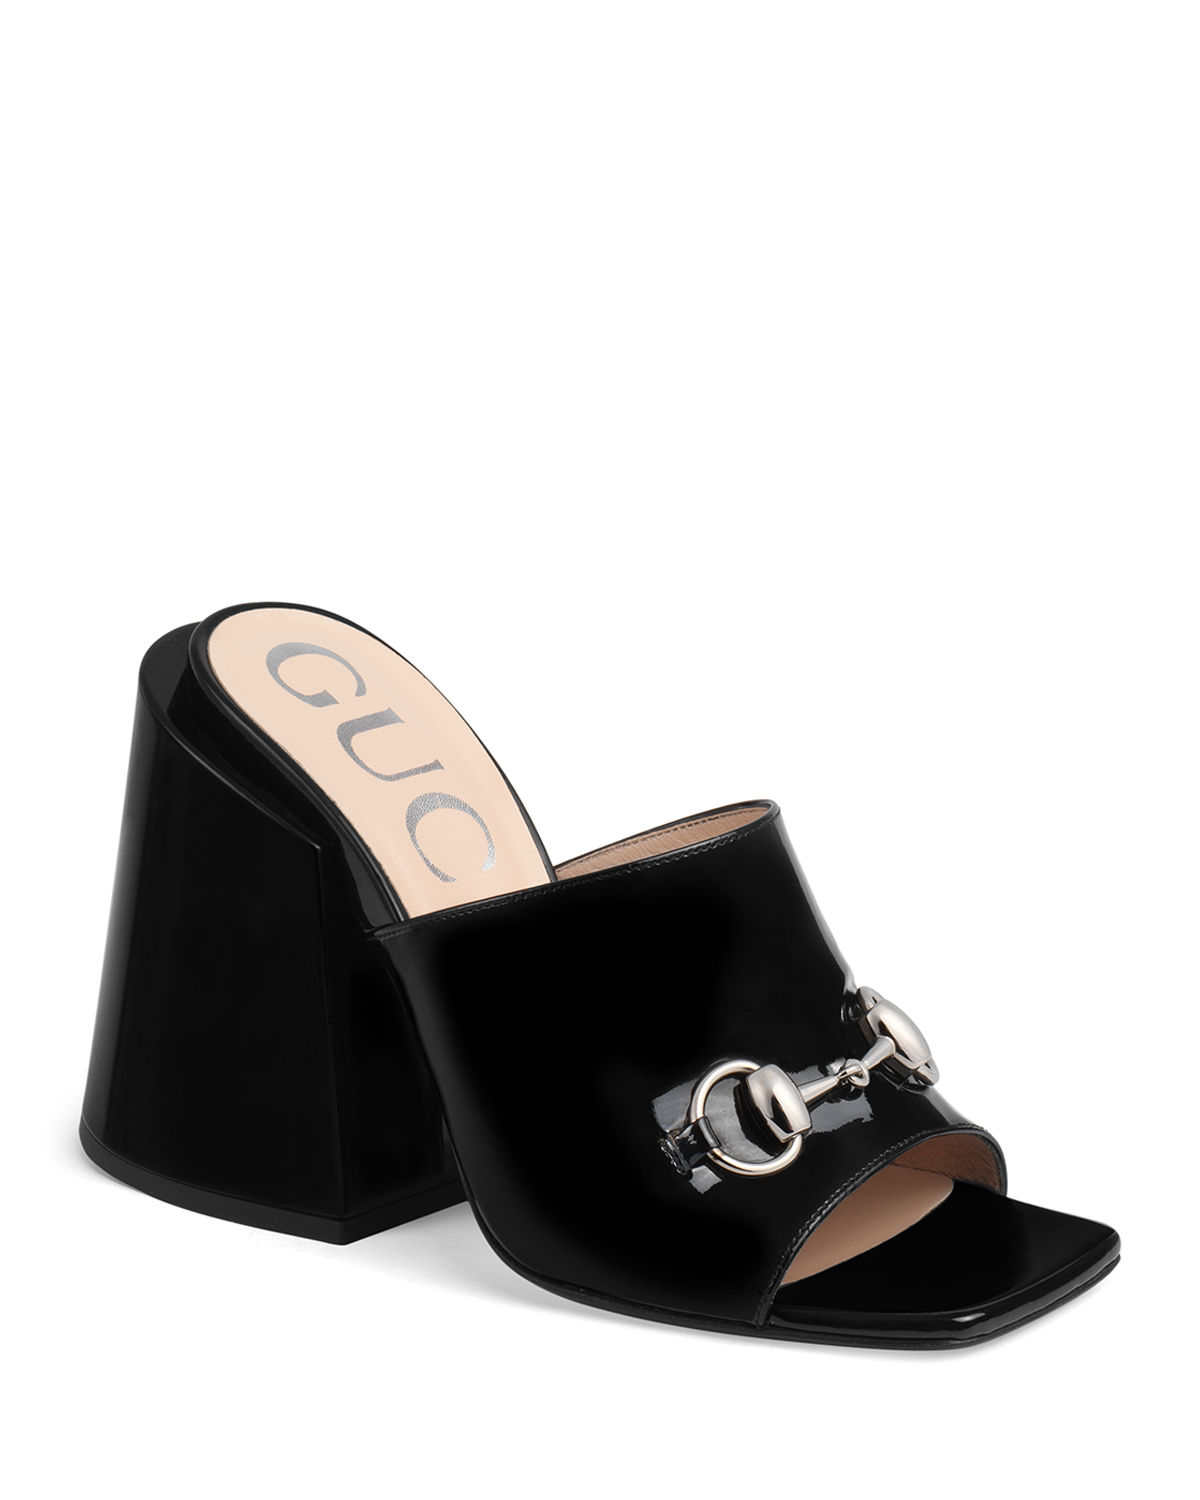 5f3a6b889ee3 Gucci Lexi 105mm Patent Leather Slide